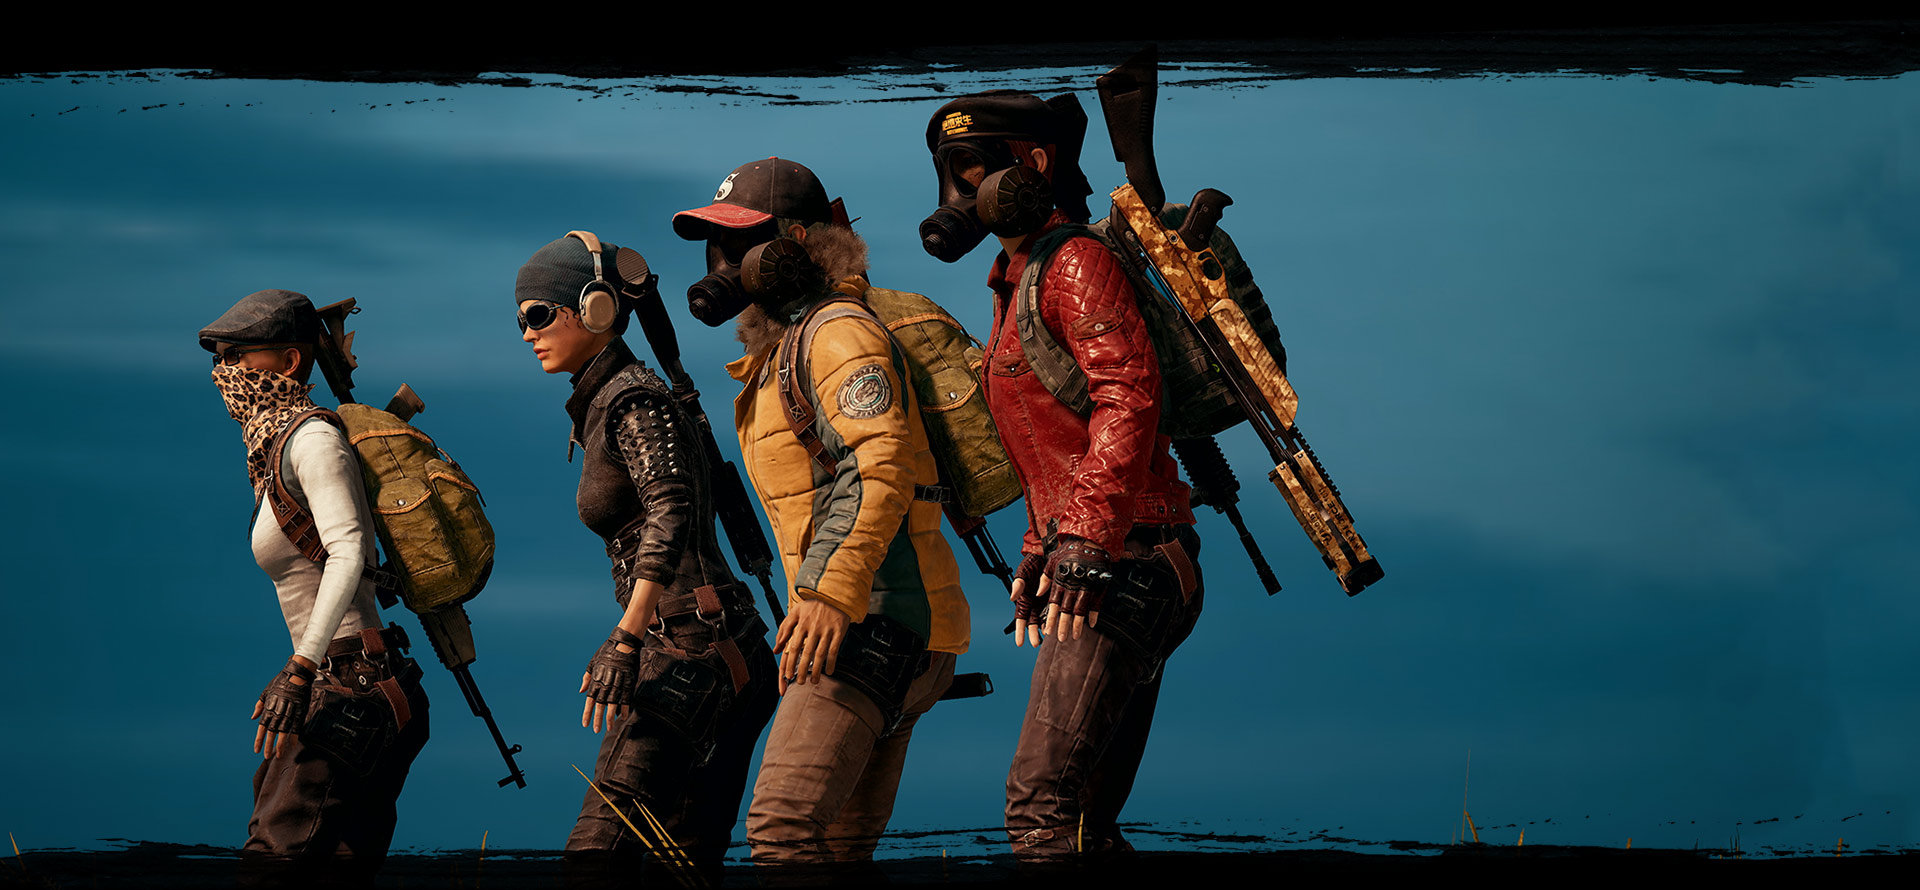 Pubg Squad Wallpaper 4k: Pubg Wallpaper 4k For Pc